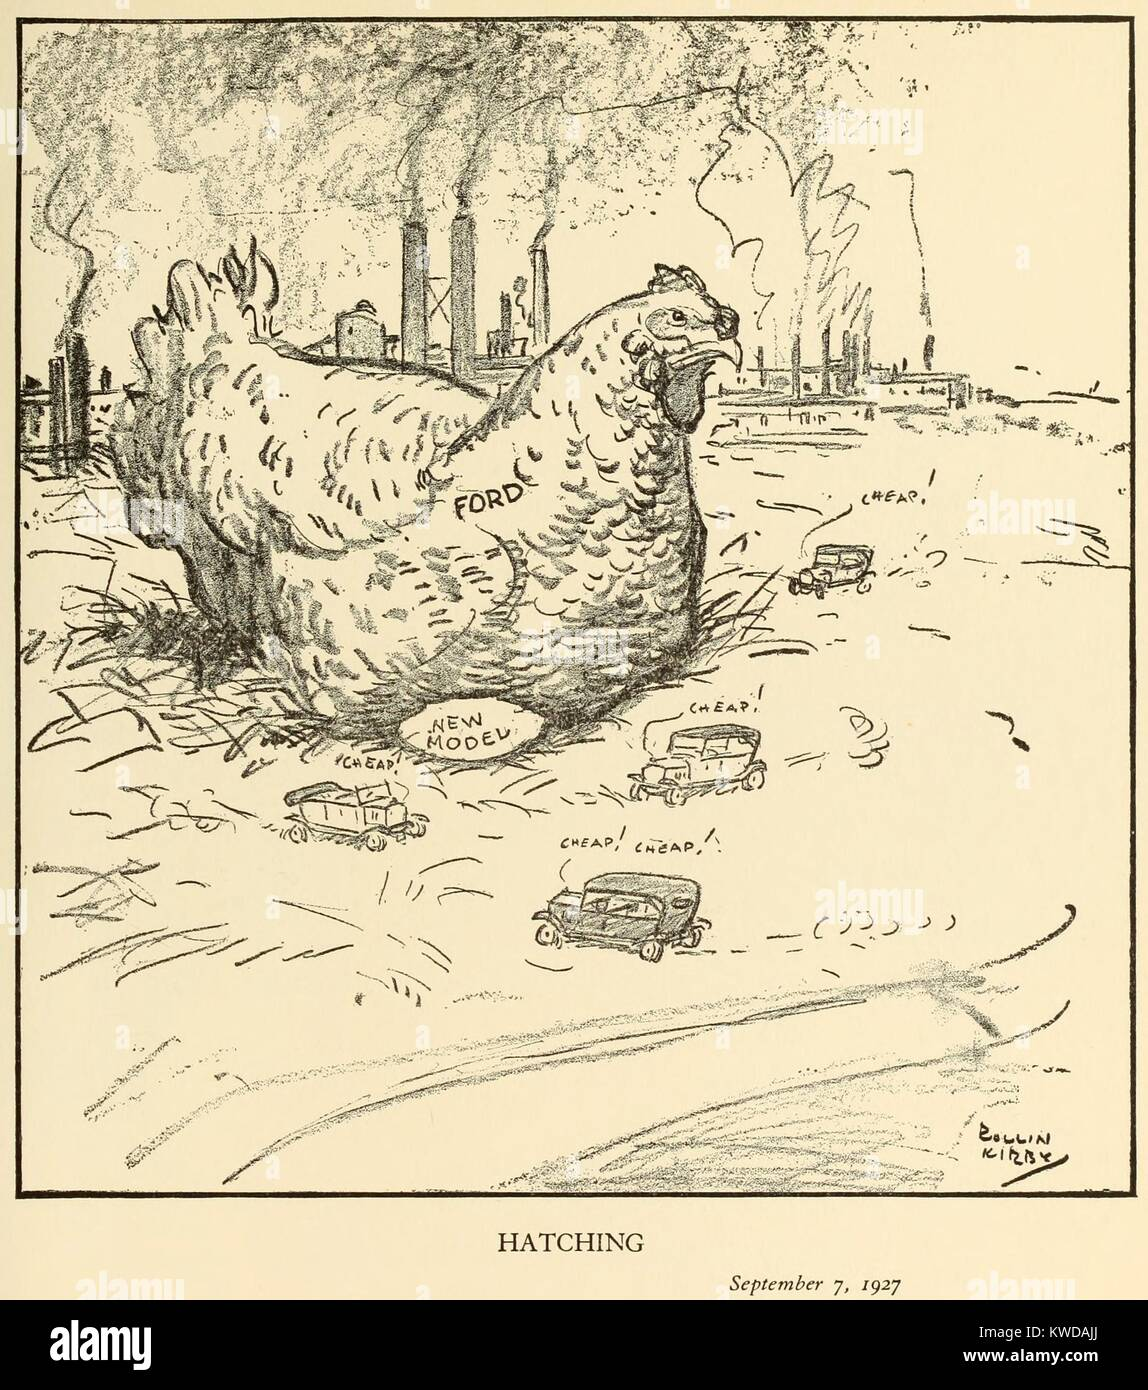 HATCHING, Cartoon by Rollin Kirby, for the New York World, Sept 7, 1927. The country was anticipating Ford's - Stock Image